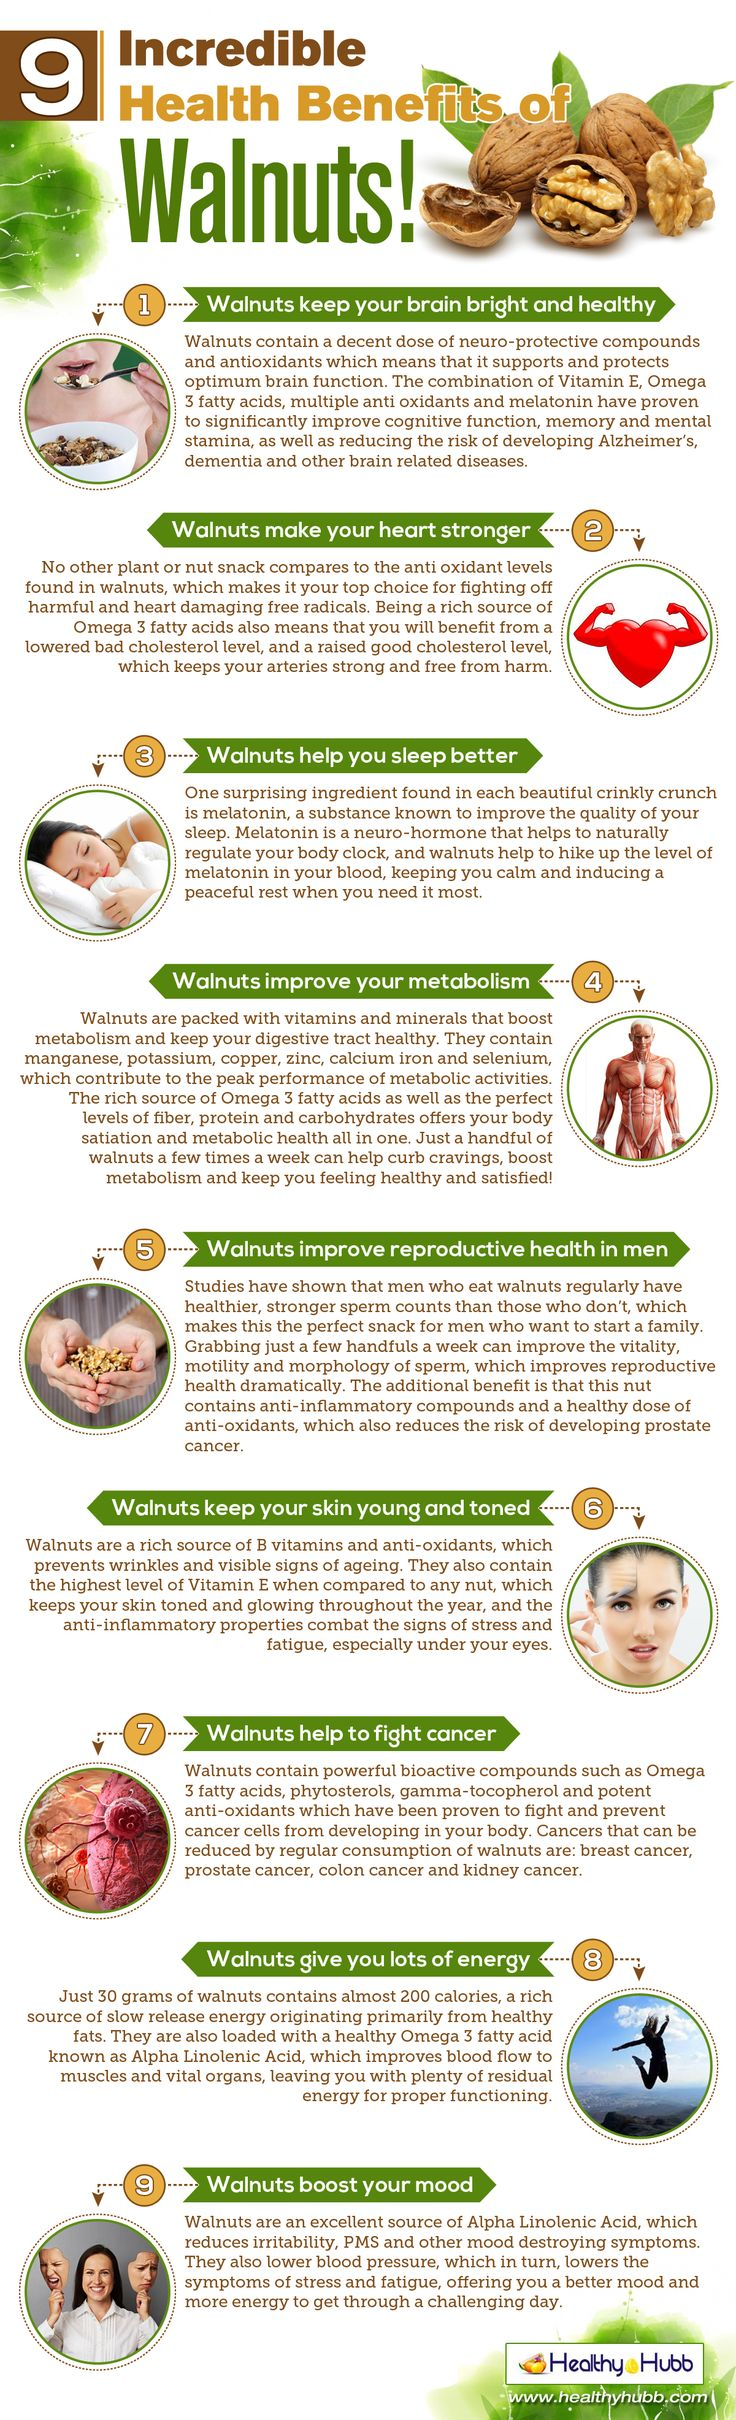 Walnuts are packed with many Health Benefits which benefit the body and the brain.  http://healthyhubb.com/9-health-benefits-of-walnuts/ #health #natural #holistic